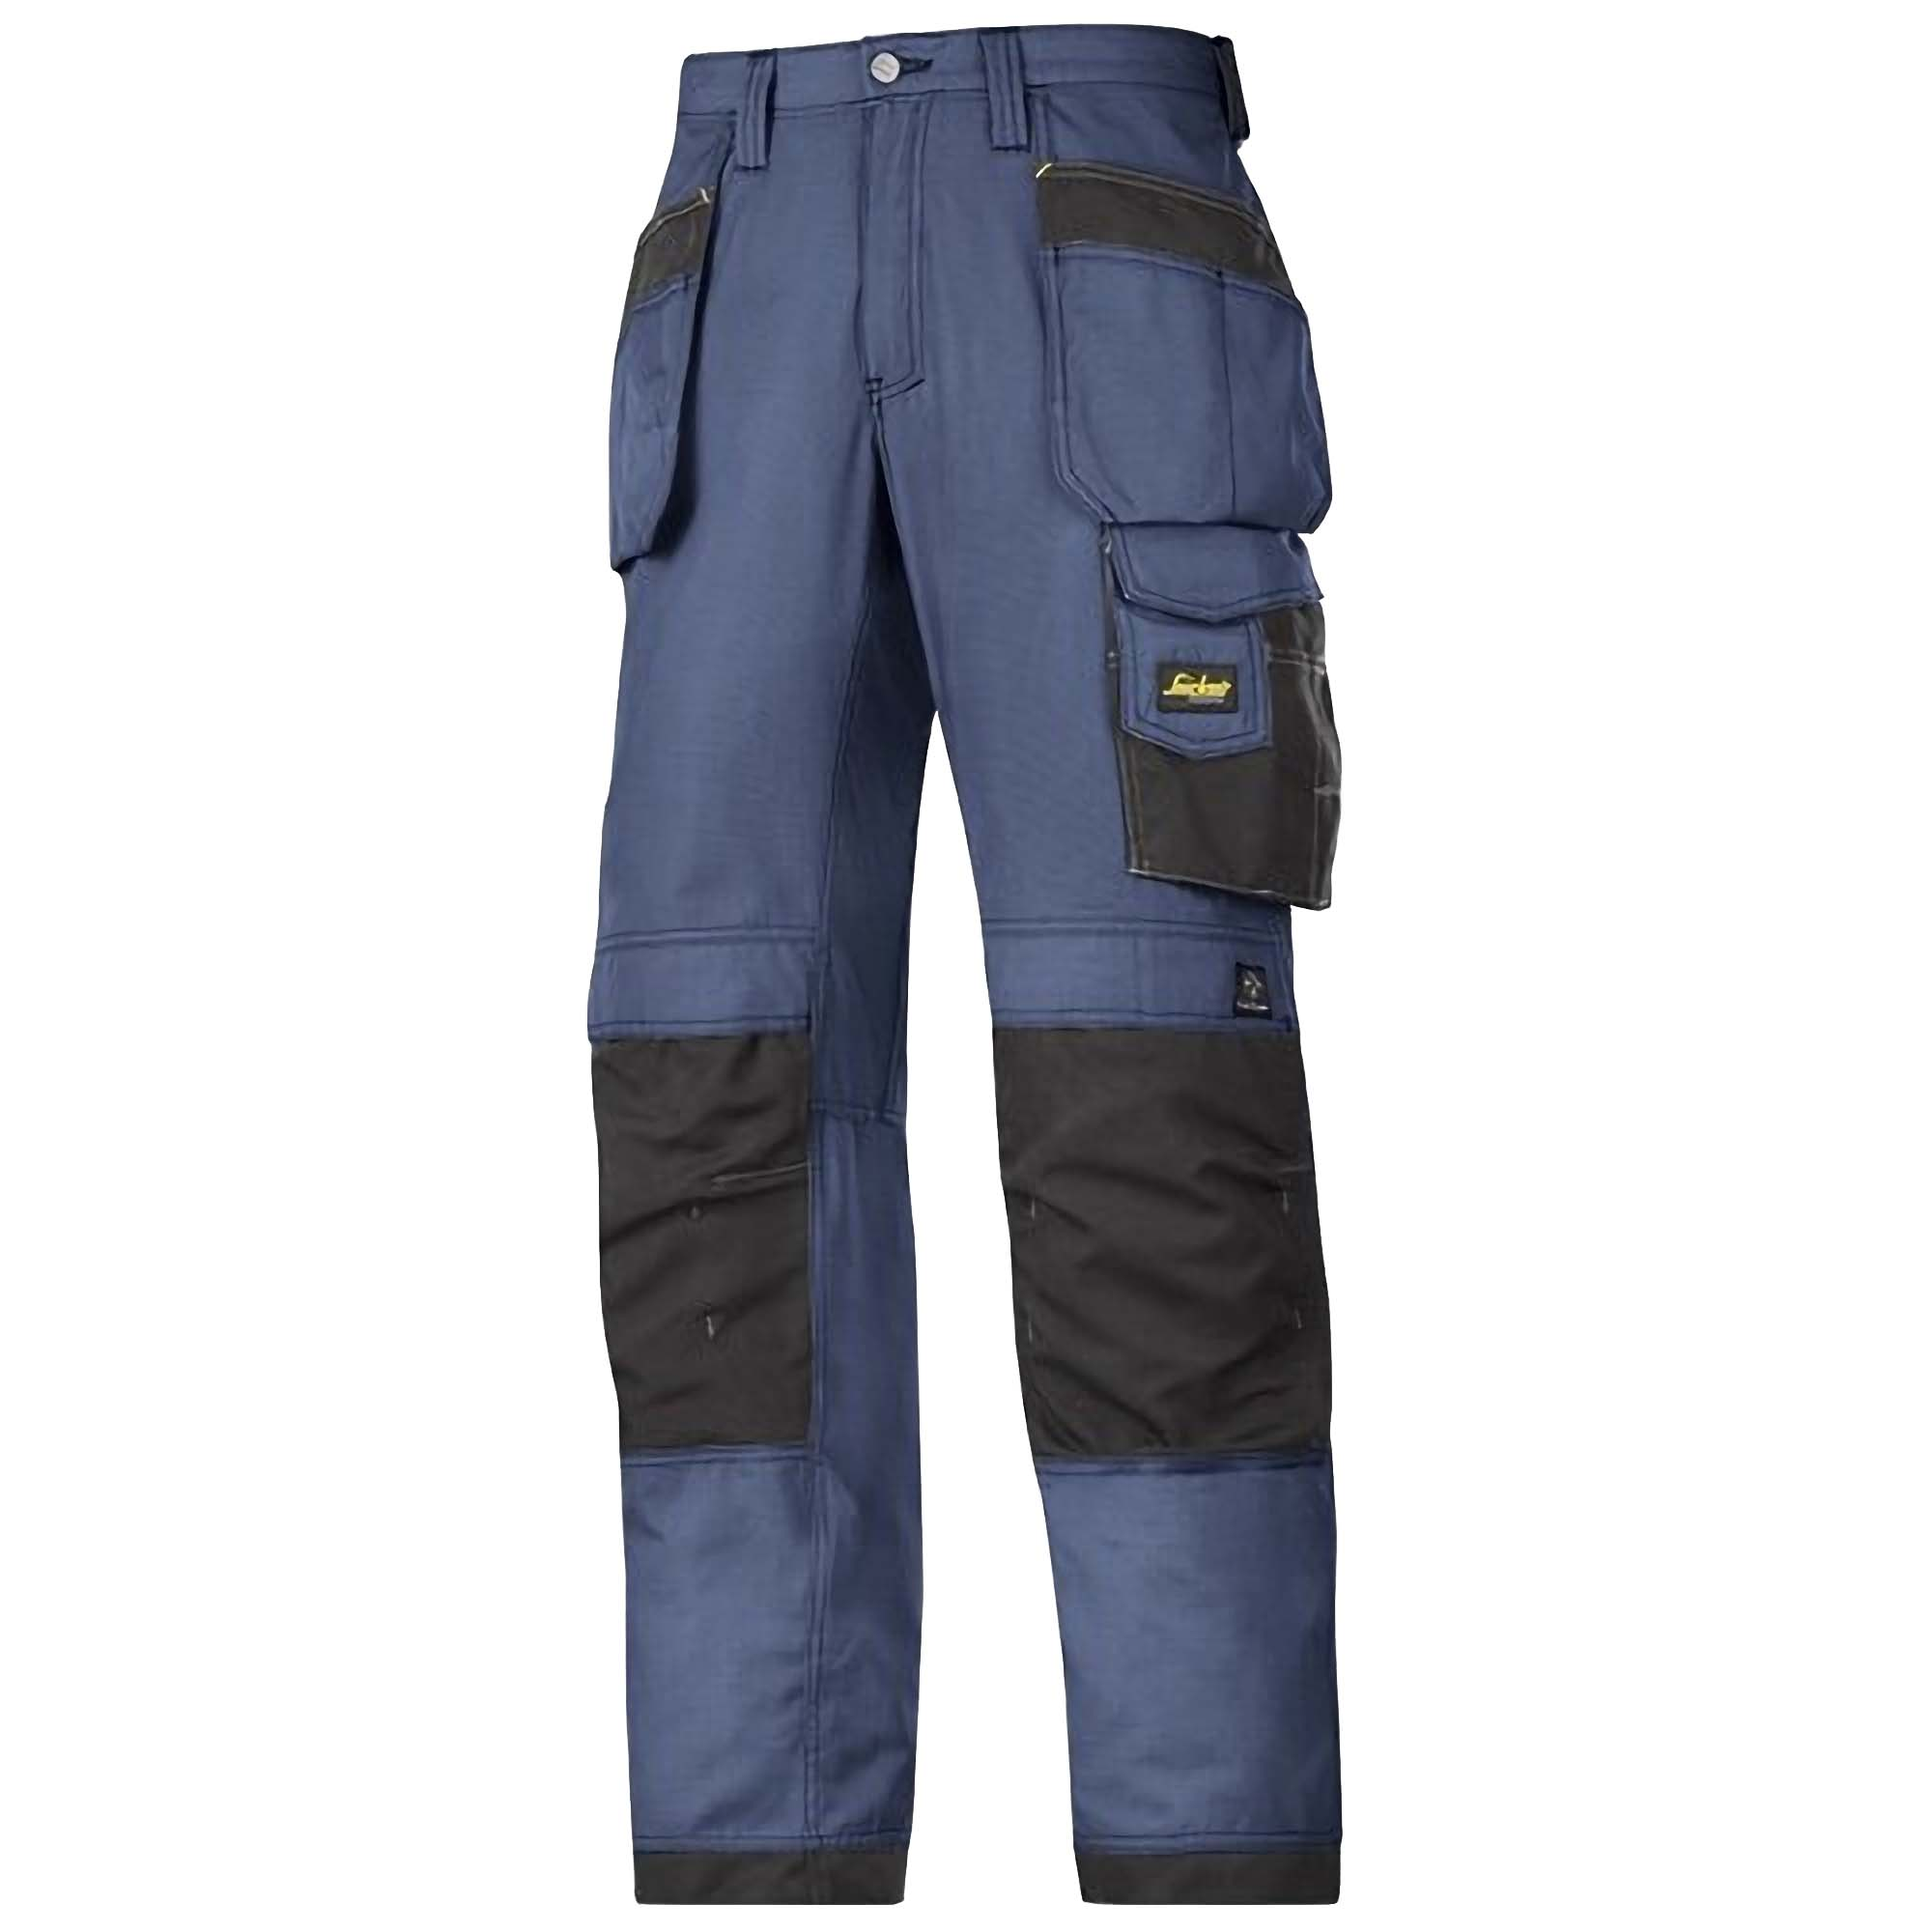 Snickers Mens Ripstop Workwear Trousers (36R) (Navy/ Black)